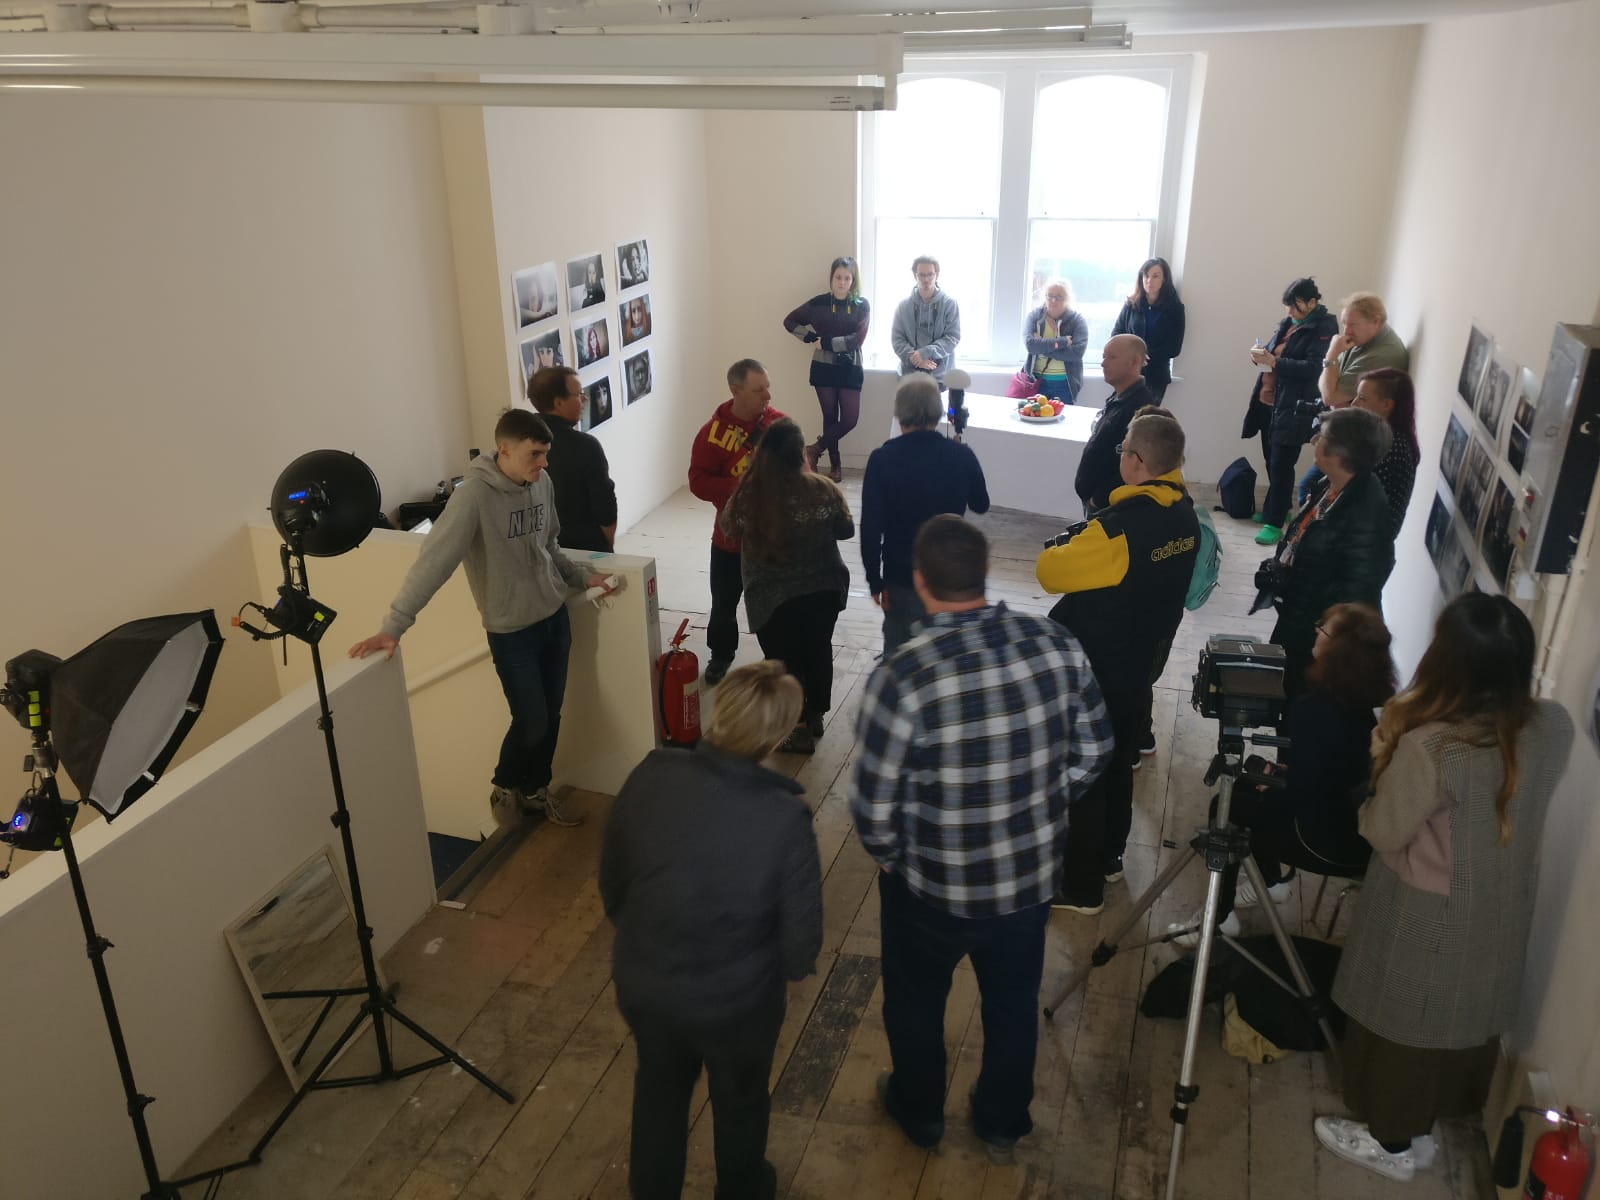 Photography workshop (led by Peter Goodrum and Paul Blakemore) at Weston Artspace, photo by Georgina Bolton